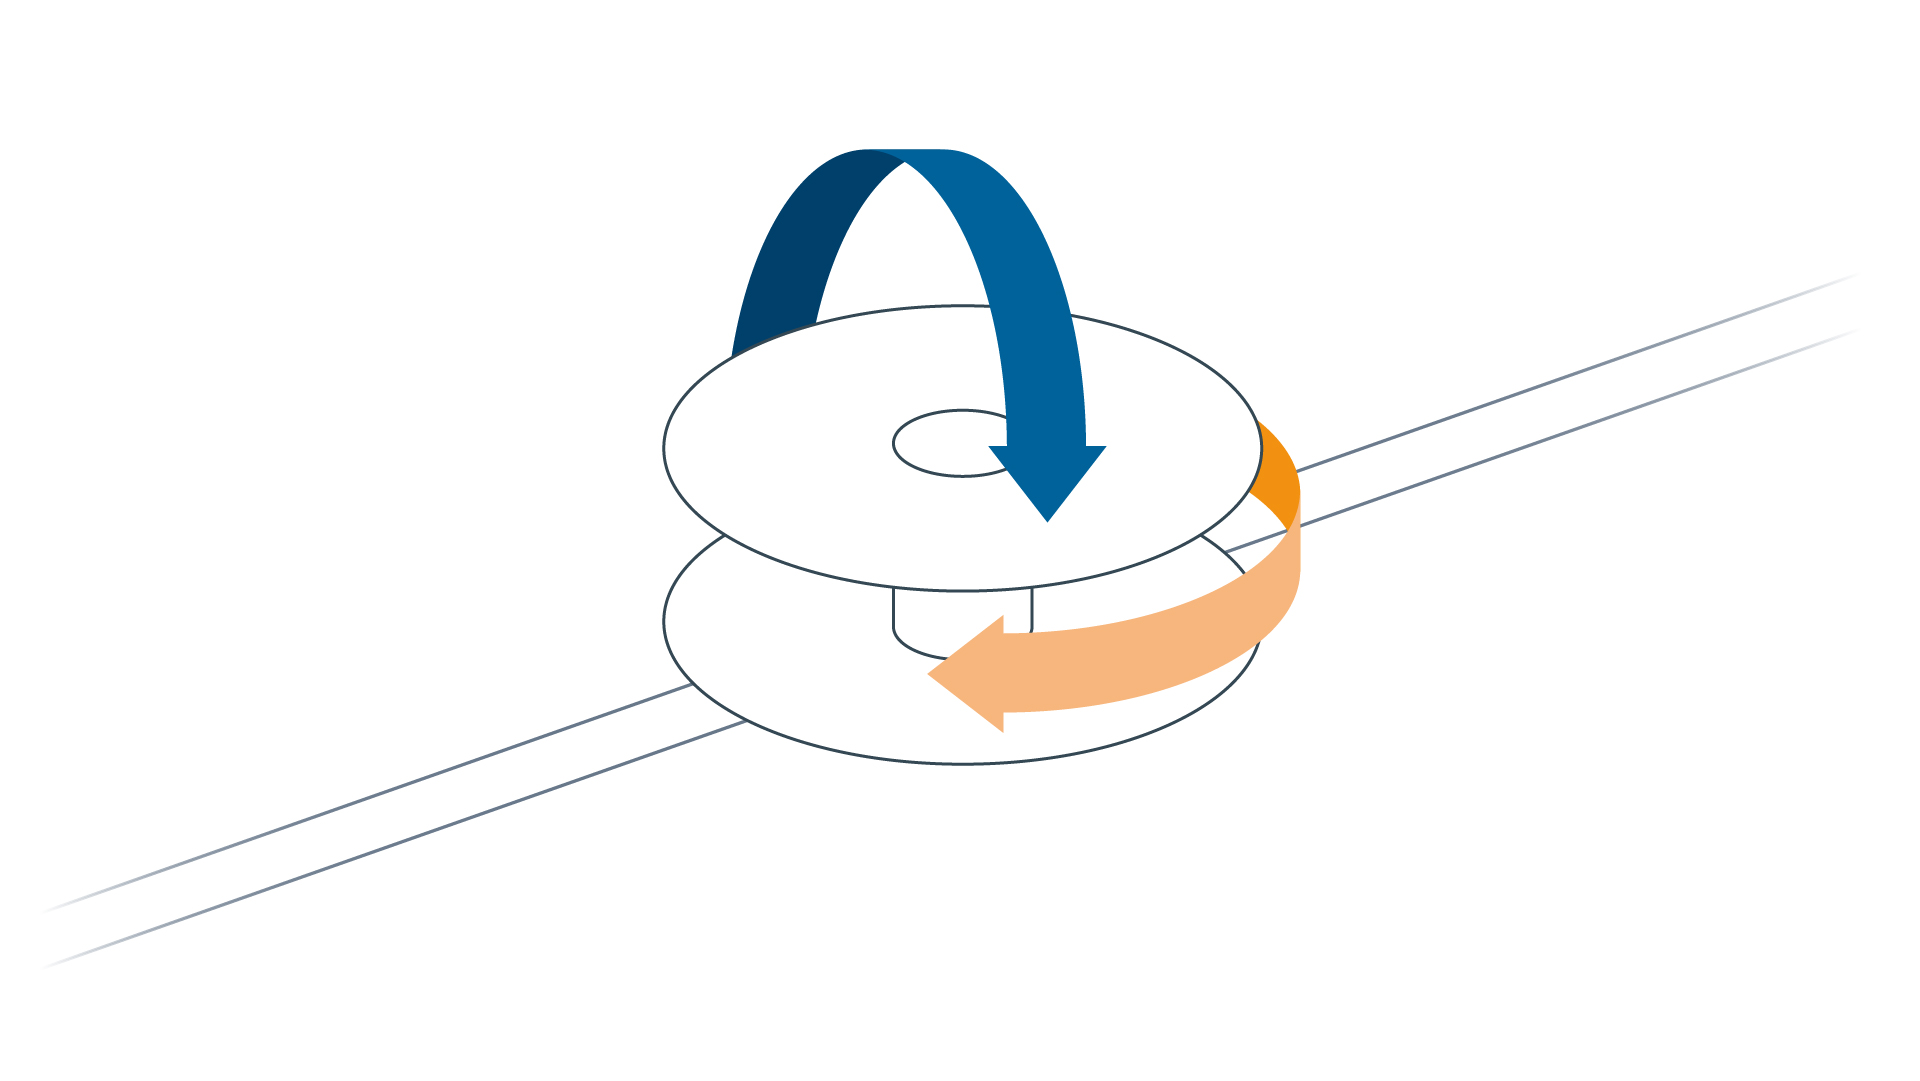 Aerial fiber deployment: The movements of a traditional fiber optic spool during a helical wrapping operation for aerial fiber deployment.